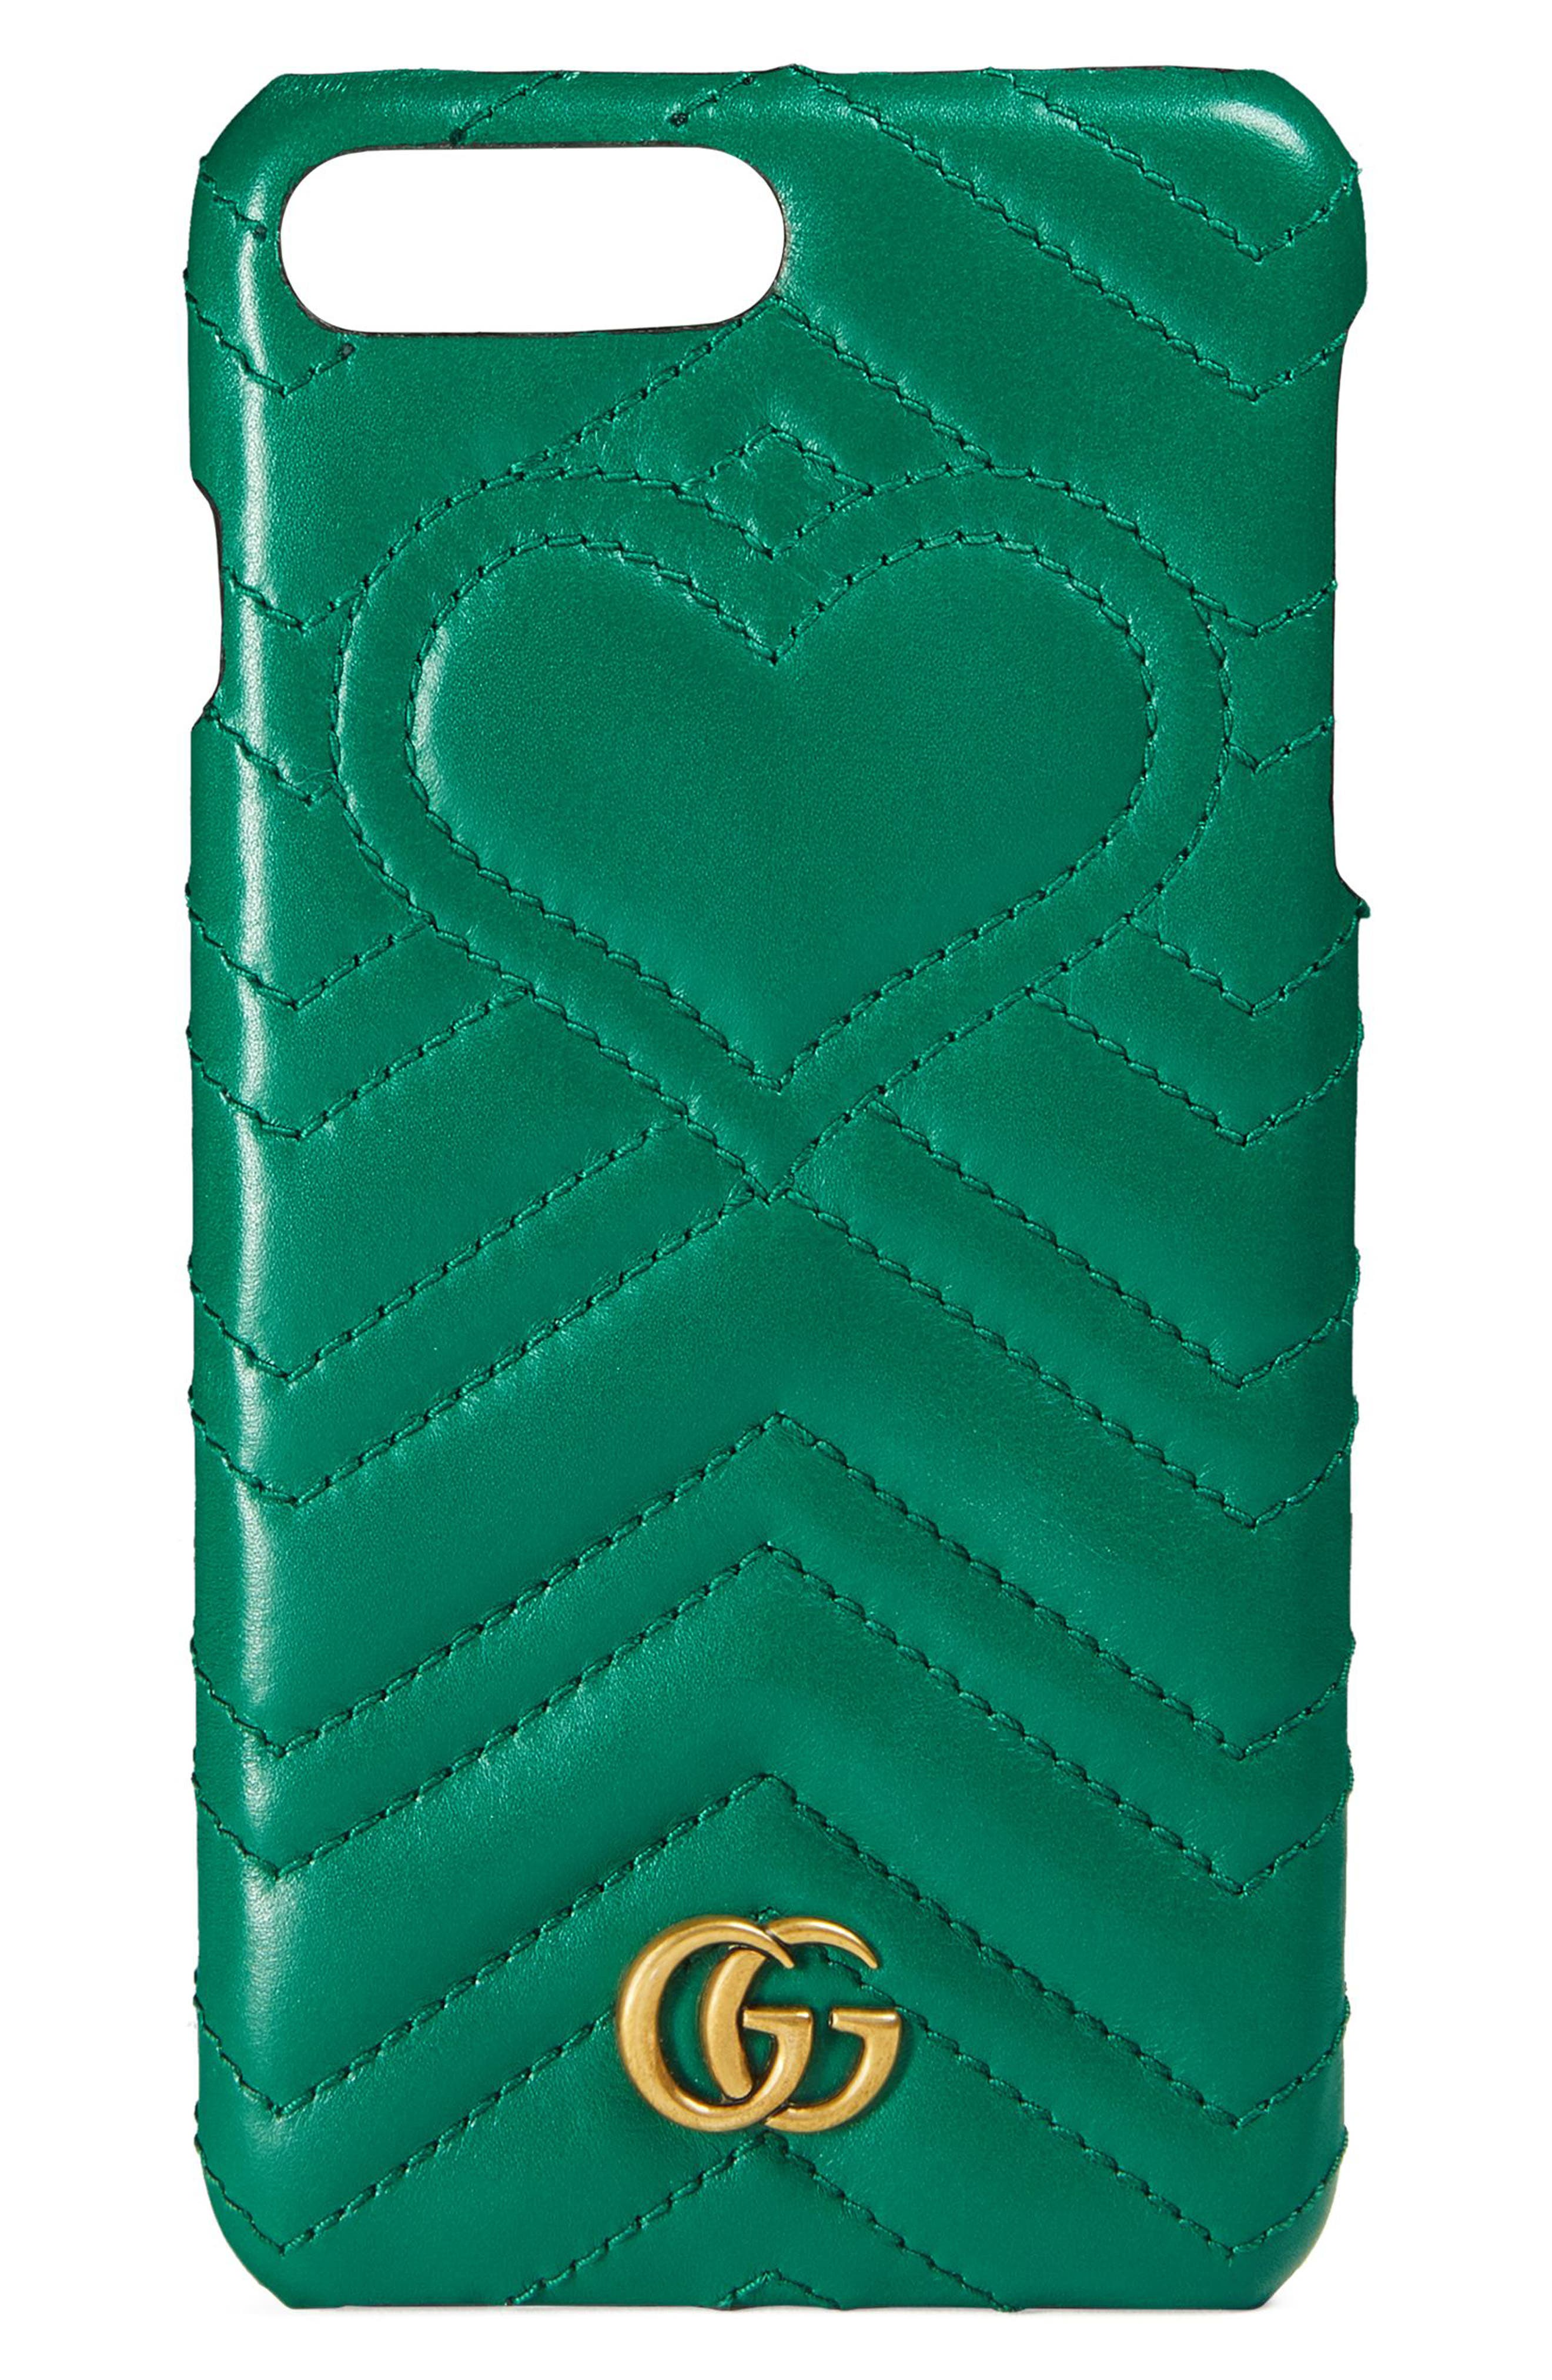 GG Marmont Leather iPhone 7 Case,                         Main,                         color, Emerald